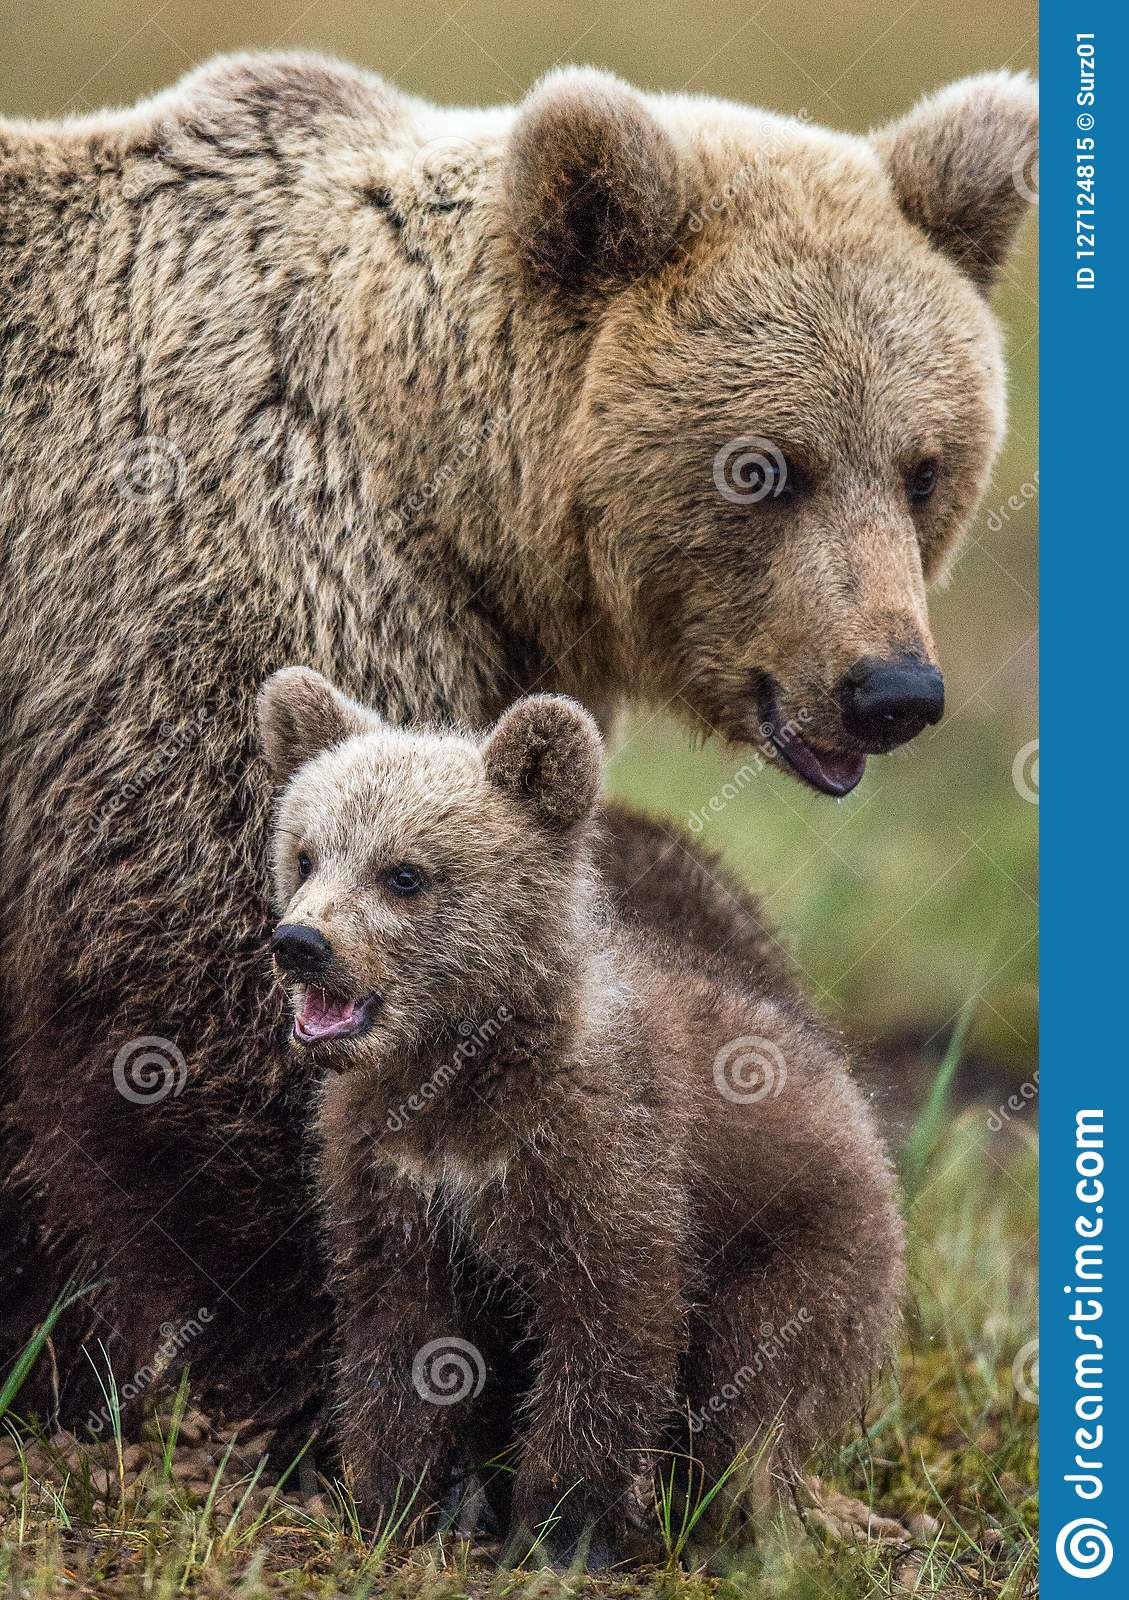 She-bear and bear-cub. Cub and Adult female of Brown Bear in the forest at summer time.